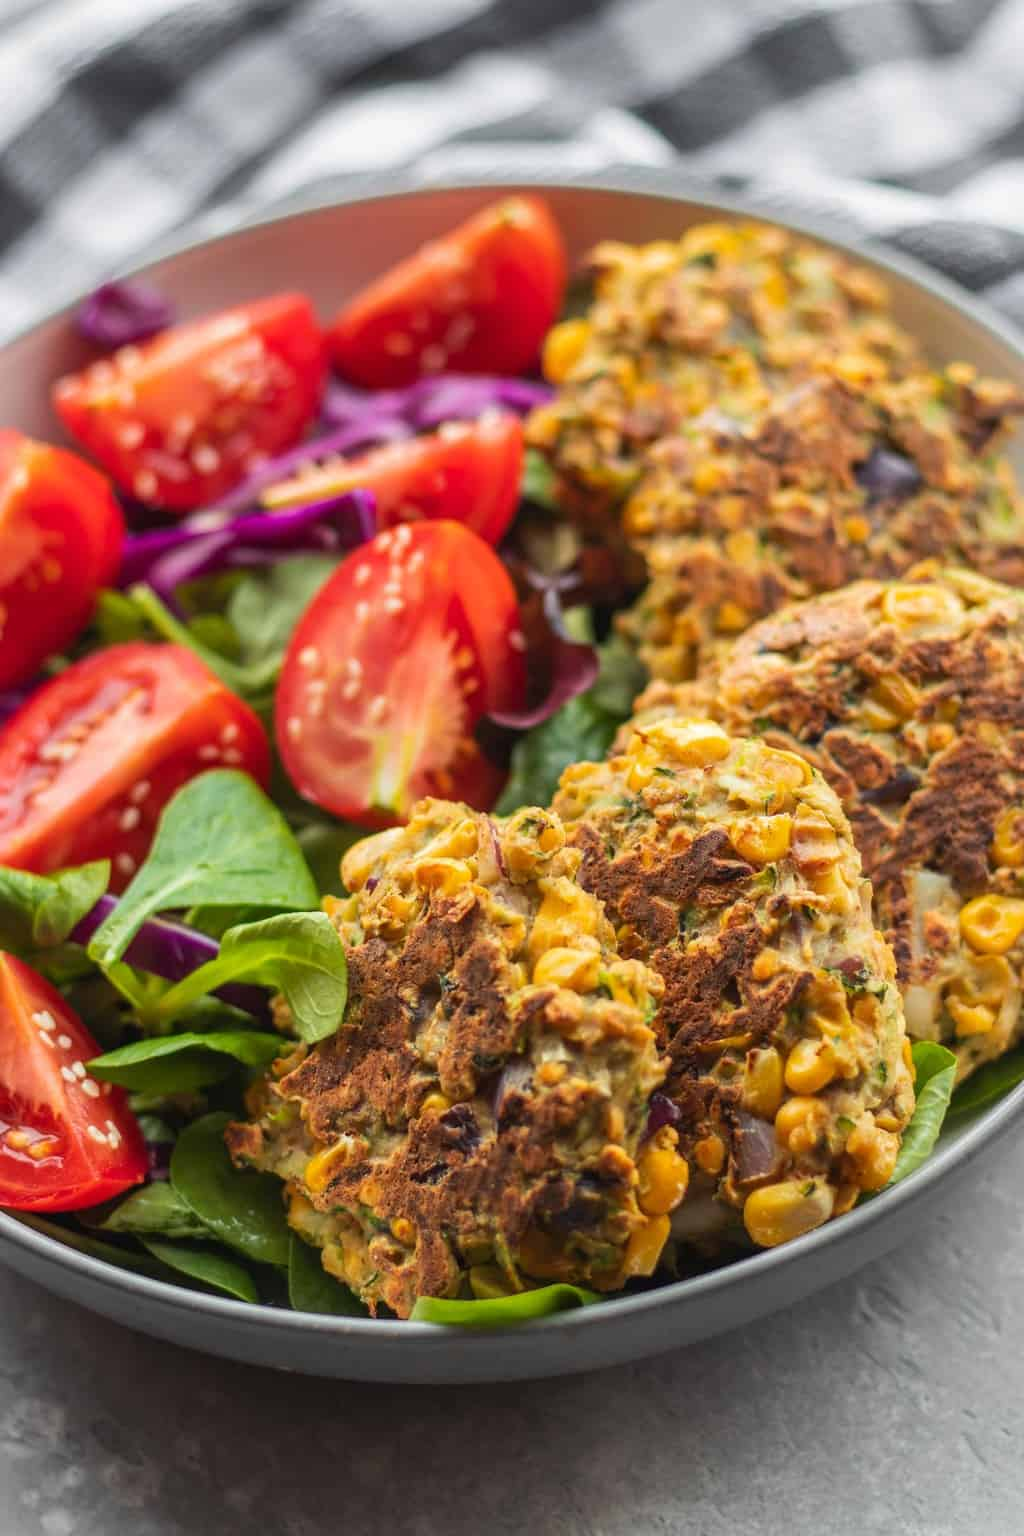 Vegan red lentil zucchini fritters with salad